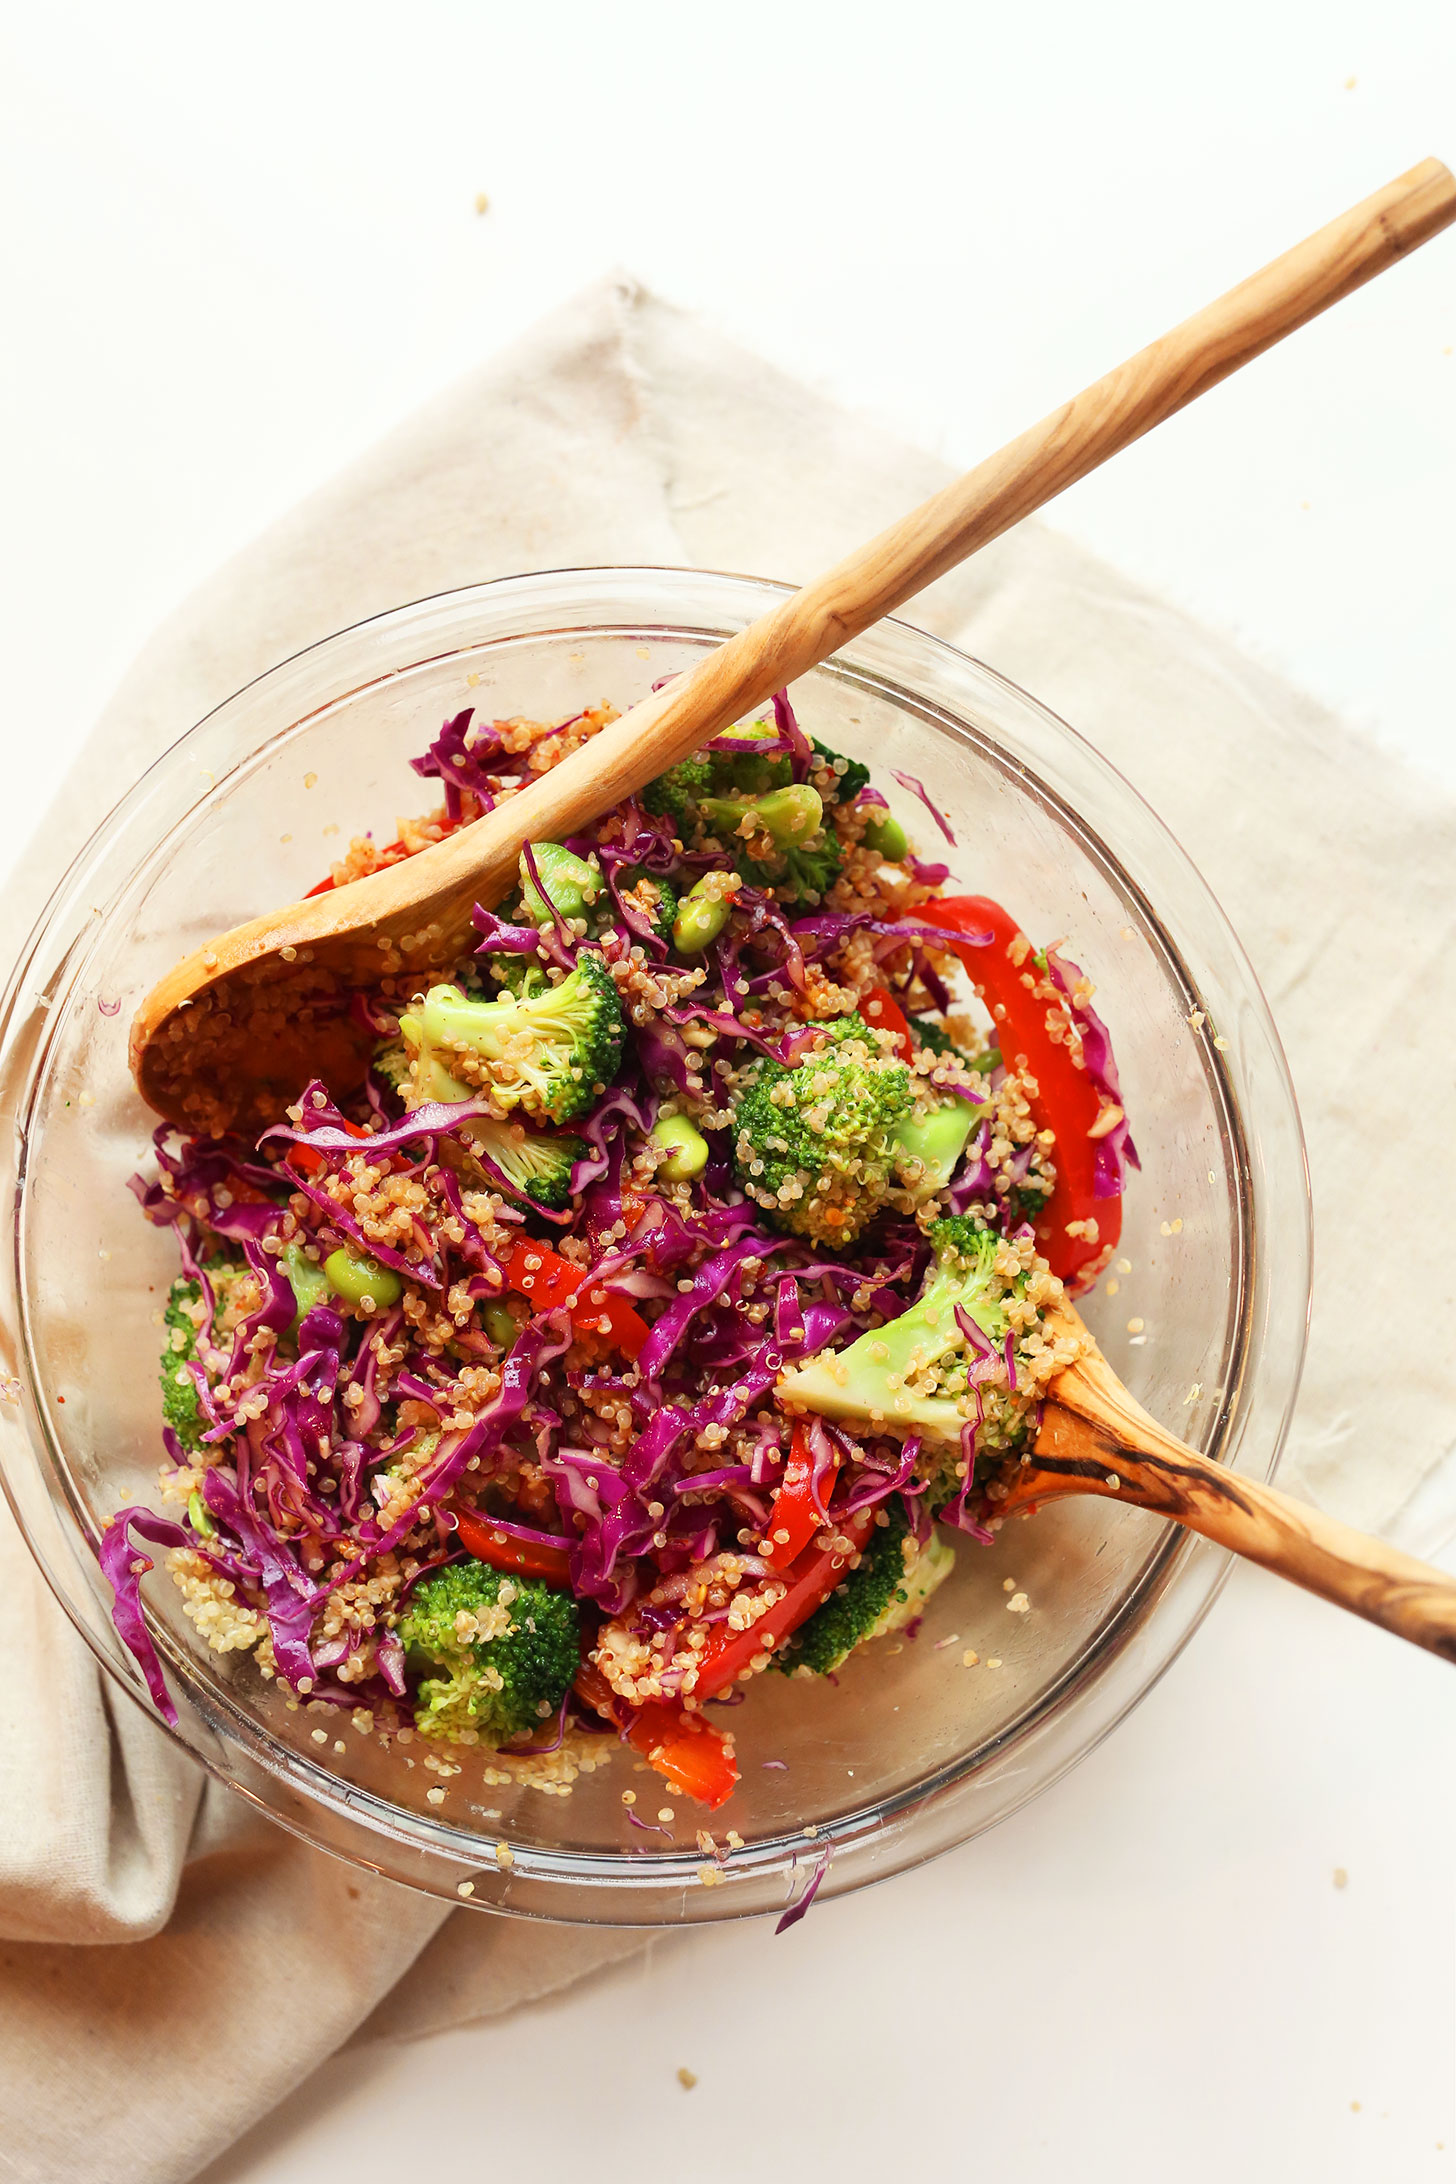 Bowl of our gluten-free vegan Rainbow Quinoa Salad Recipe